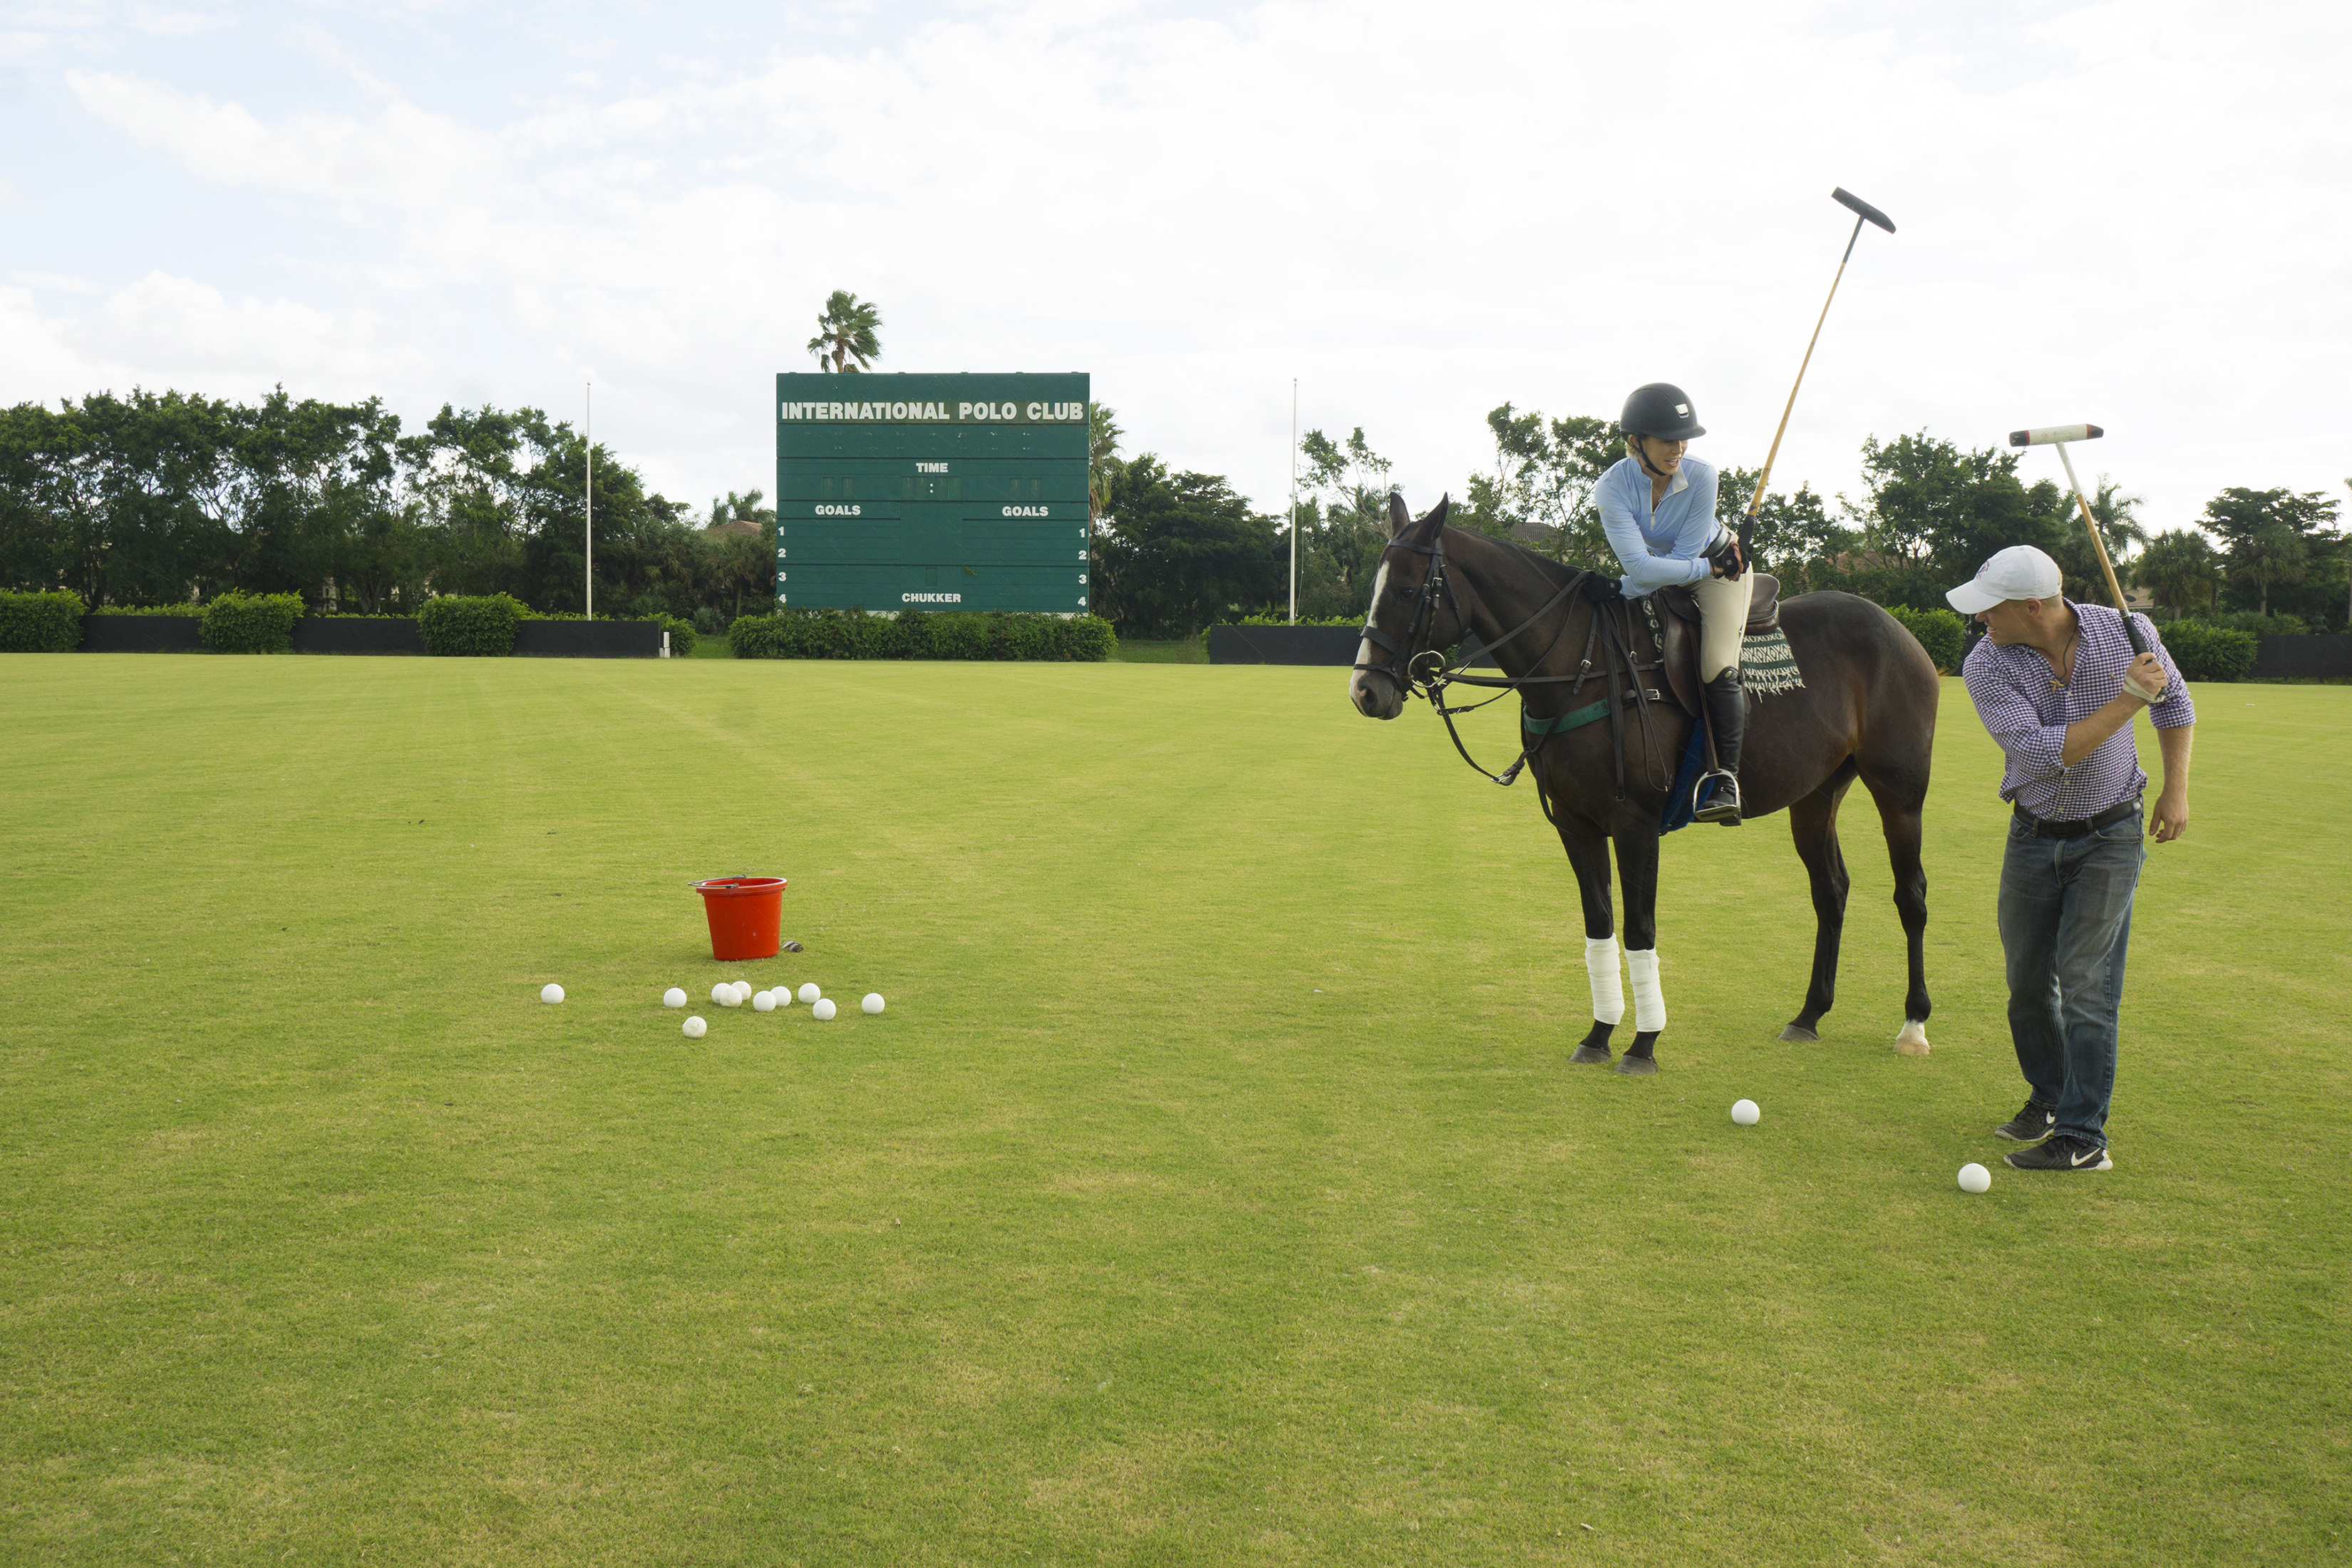 Polo Lessons at IPC